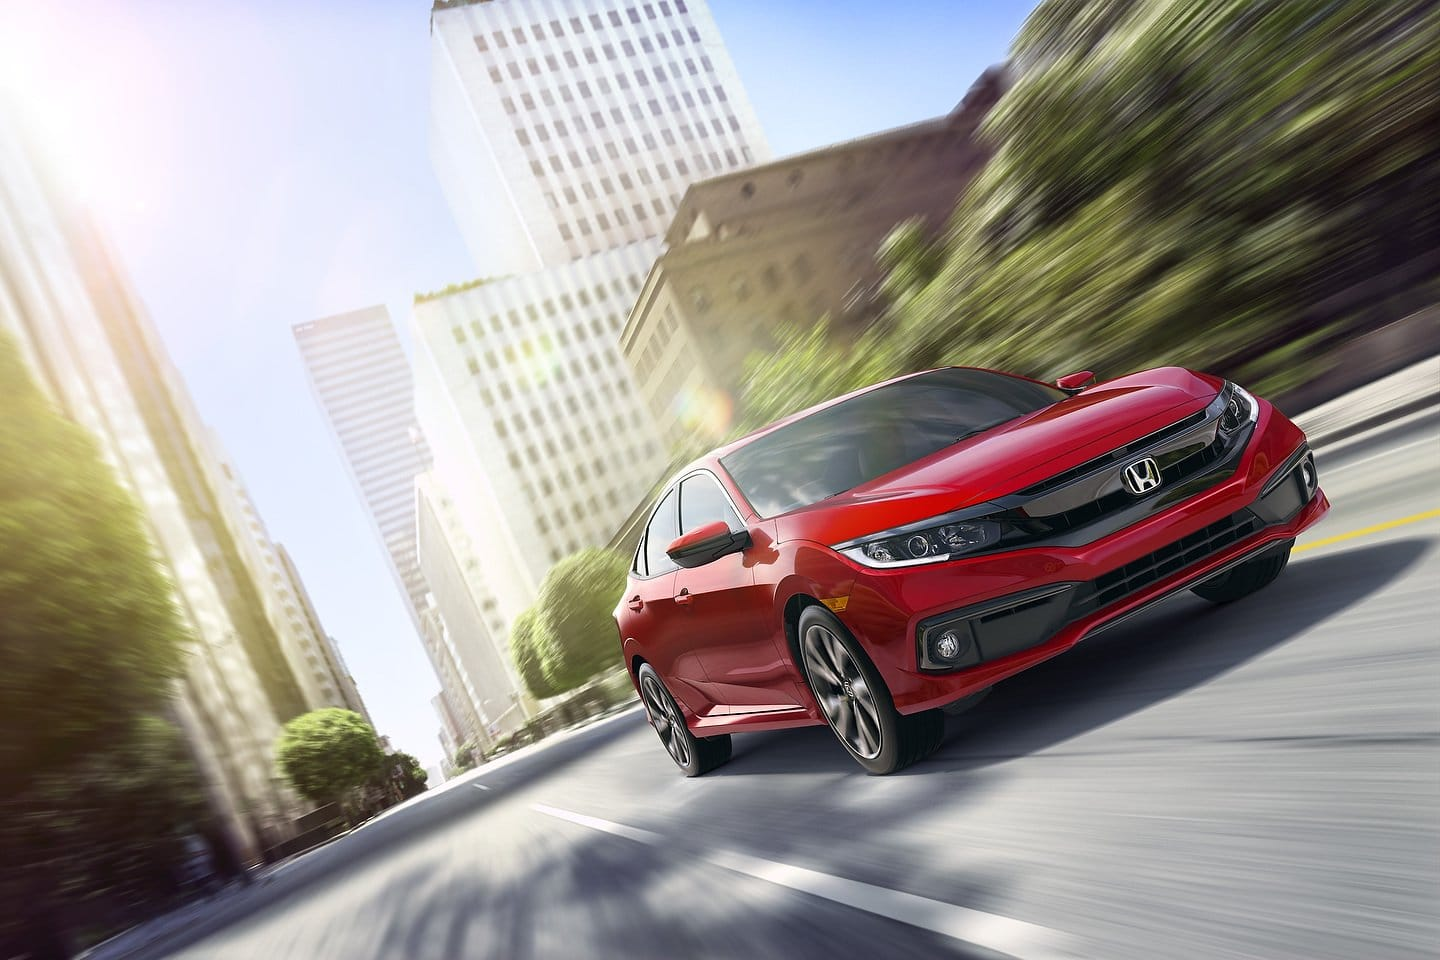 Best-selling cars in Canada - Honda